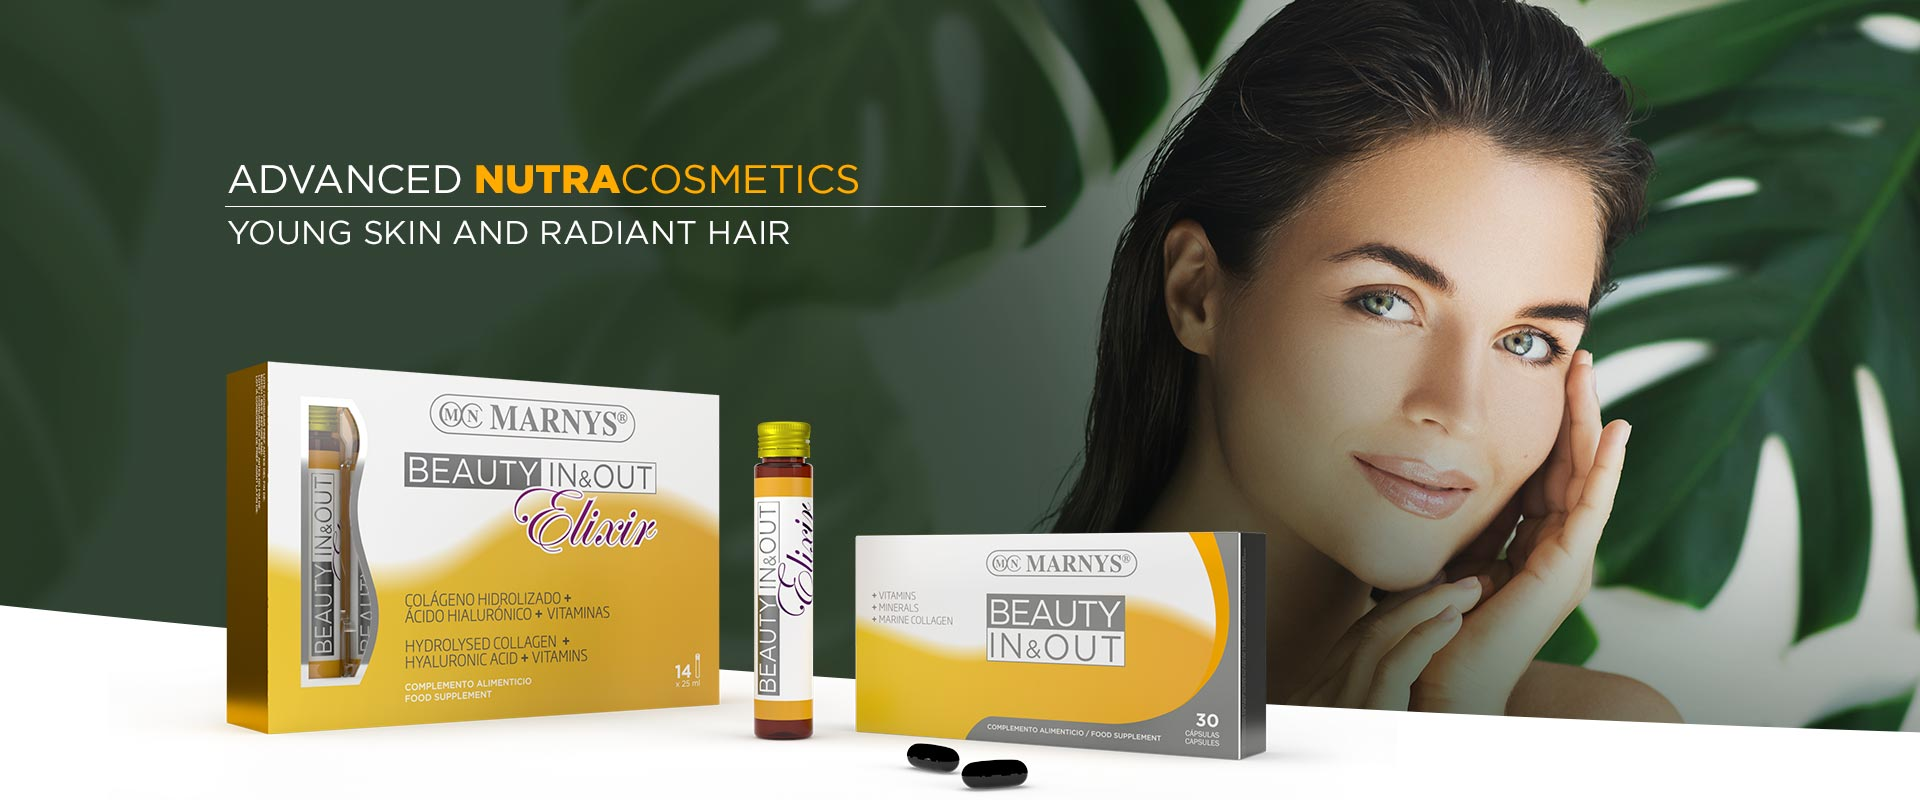 YOUNG SKIN AND RADIANT HAIR | ADVANCED NUTRACOSMETICS